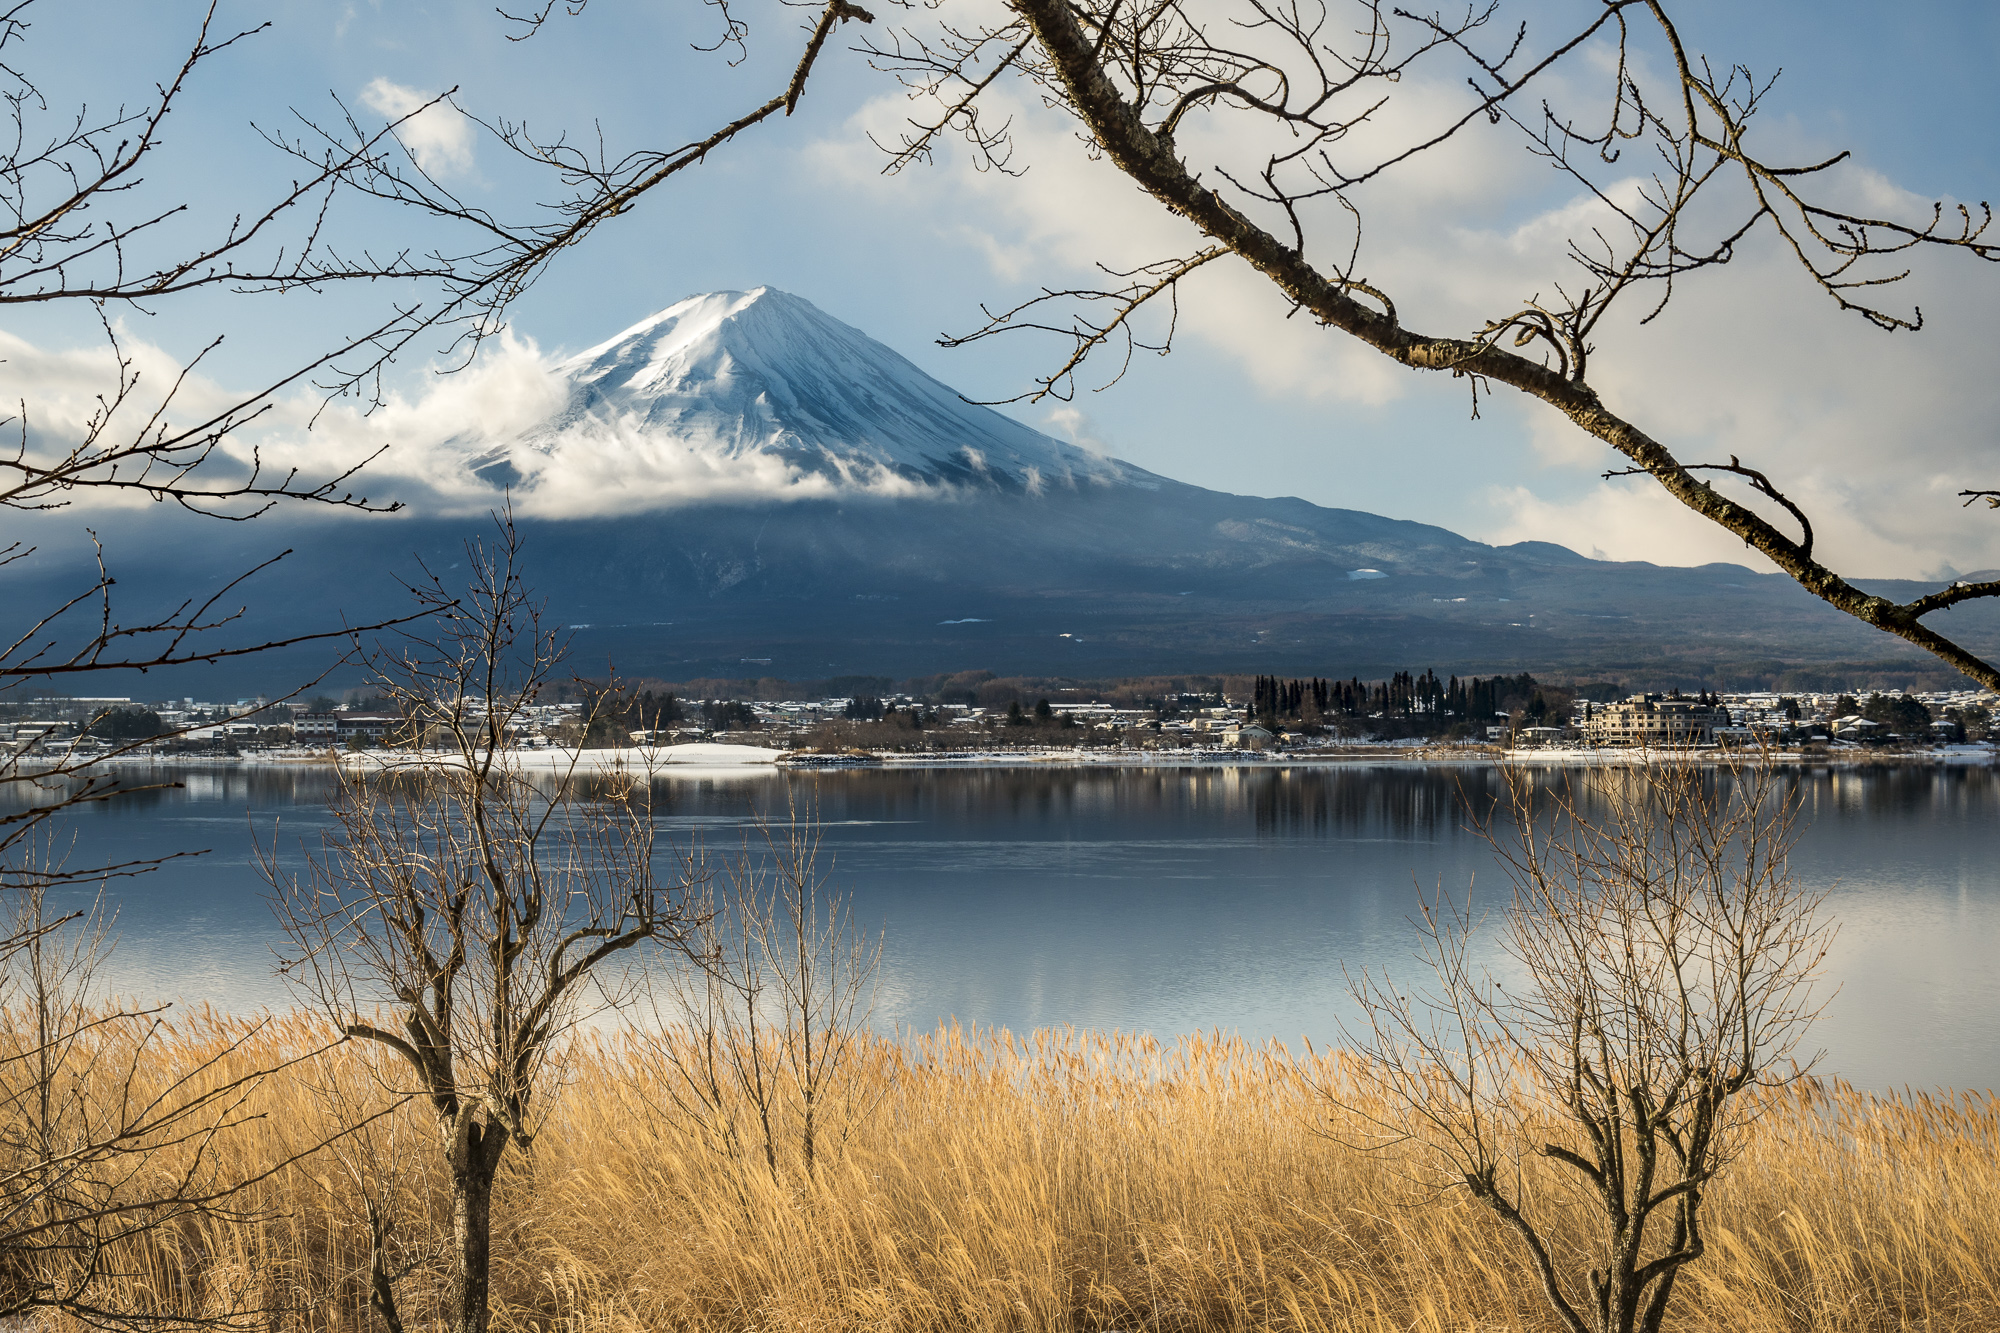 Mt Fuji Five Lakes